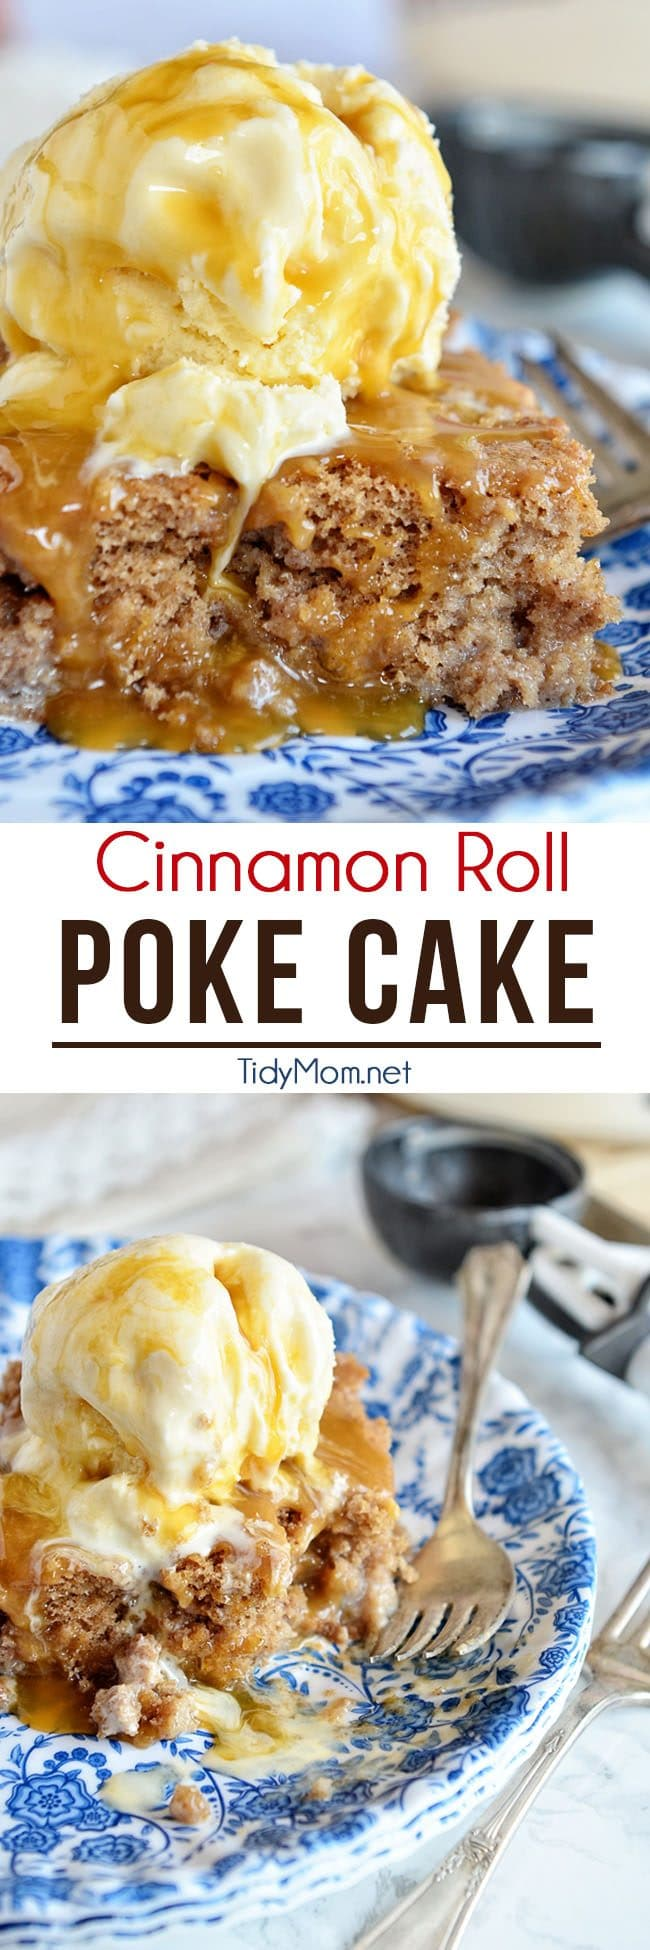 Transform a boxed-mix cake into a delicious cinnamon roll-flavored poke cake. Serve with vanilla ice cream and caramel sauce and watch it disappear quickly. Cinnamon Roll Poke Cake recipe at TidyMom.net